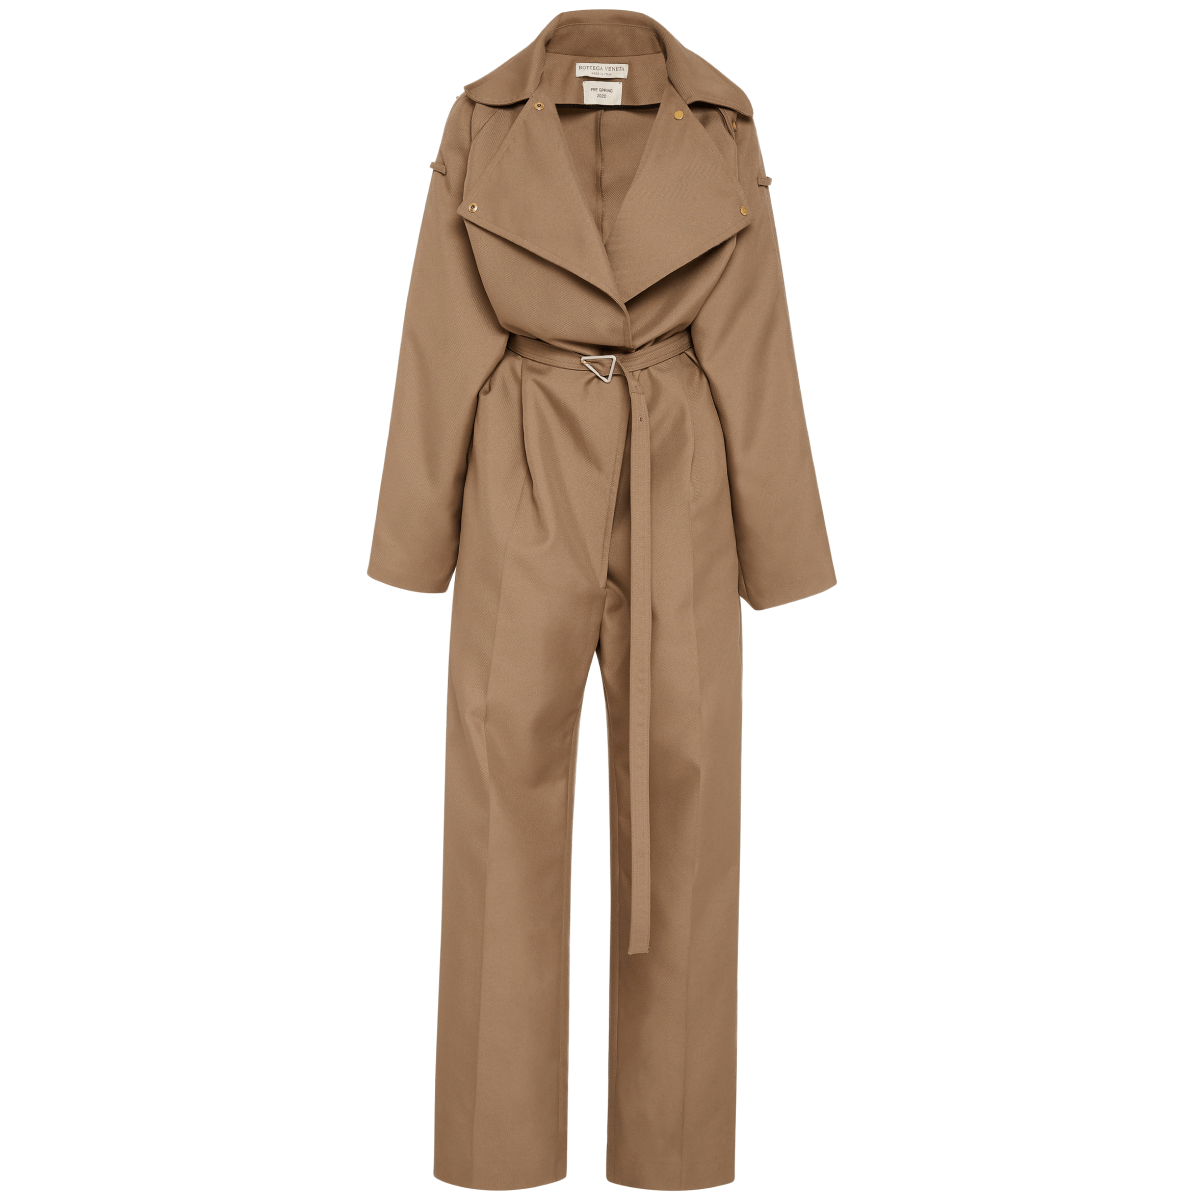 Bottega Veneta jumpsuit